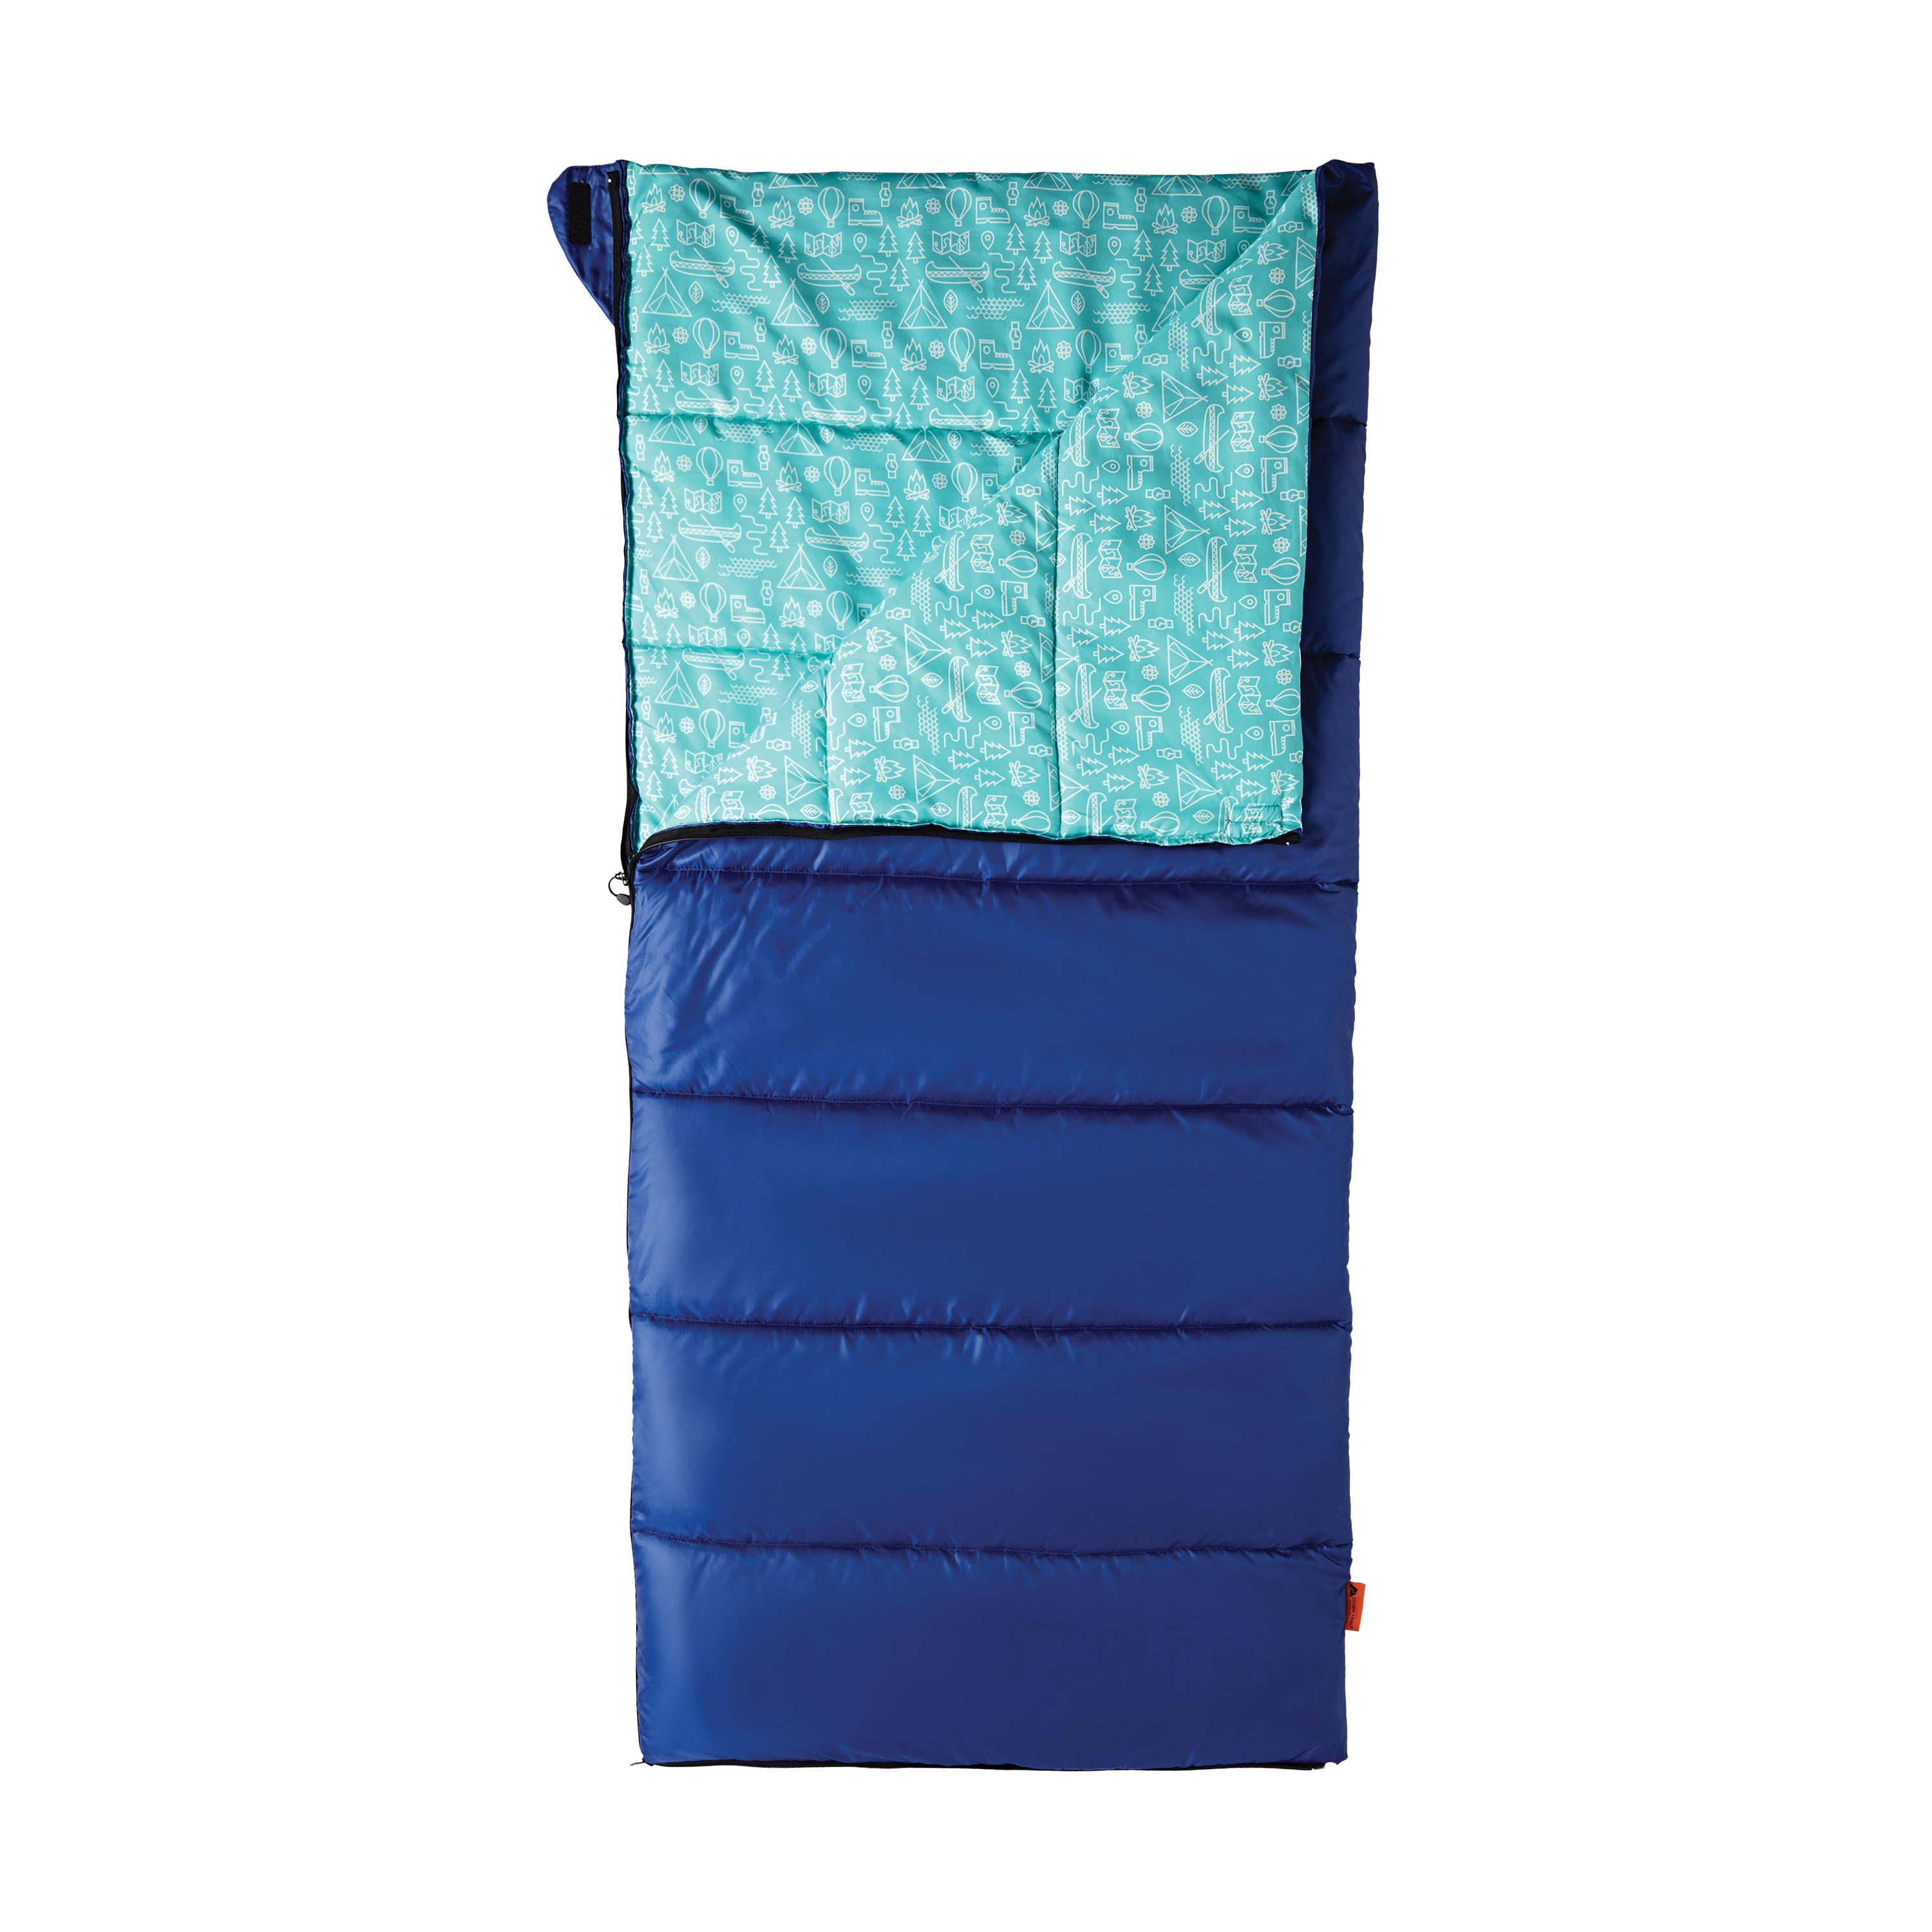 OZARK TRAIL YOUTH CAMP SLEEPING BAG by EUSEBIO SPORTING CO.,LTD